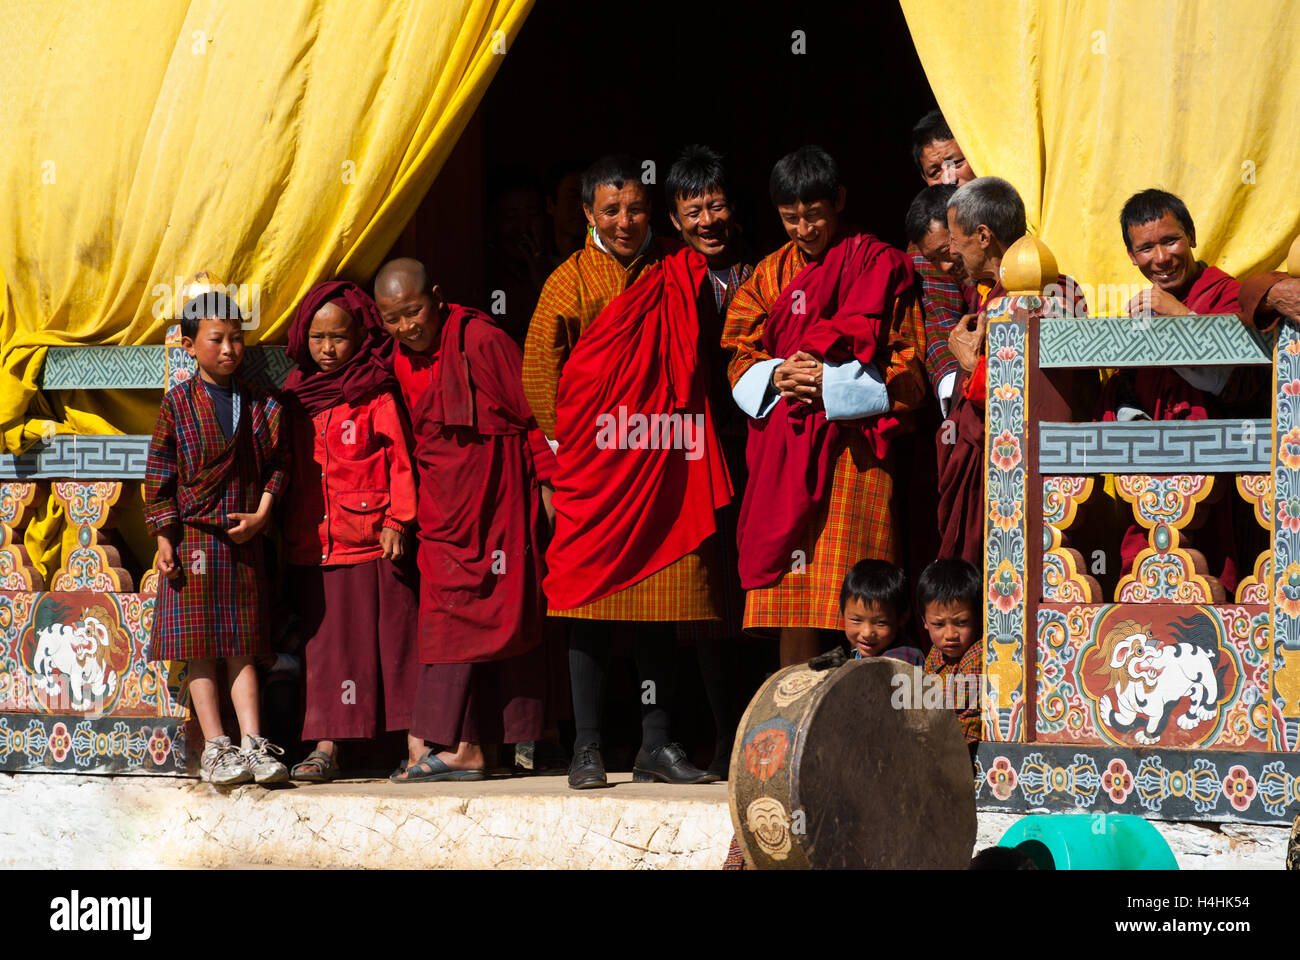 Audience at Black-necked Crane Festival, Gangte Monastery, Phobjikha Valley, Bhutan - Stock Image